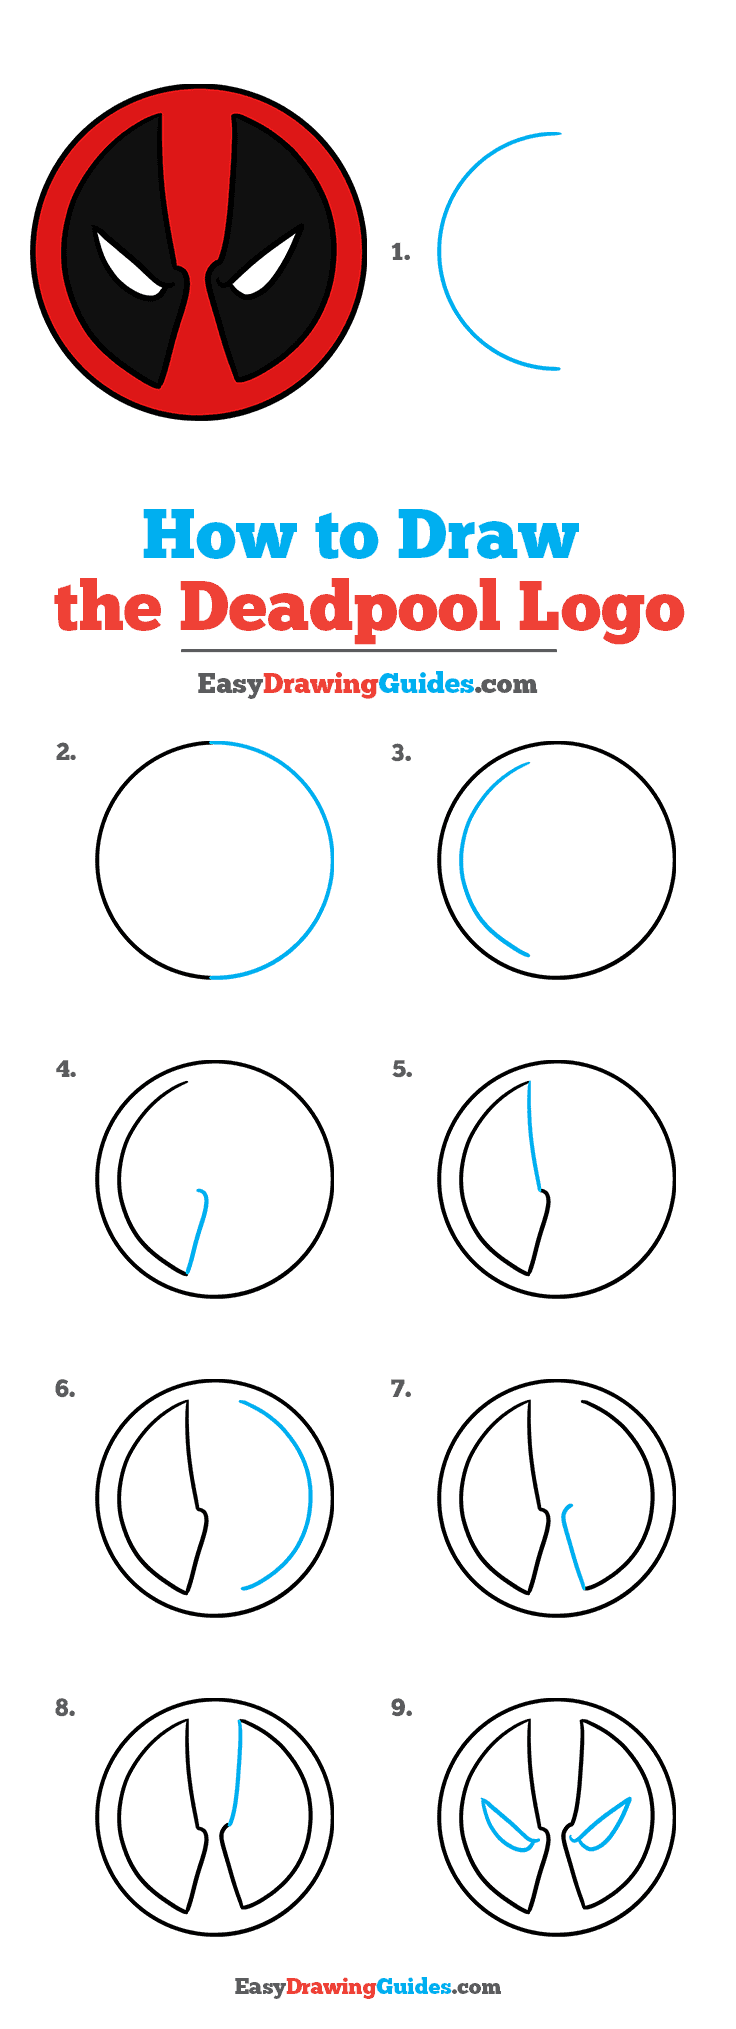 How to Draw the Deadpool Logo Step by Step Tutorial Image